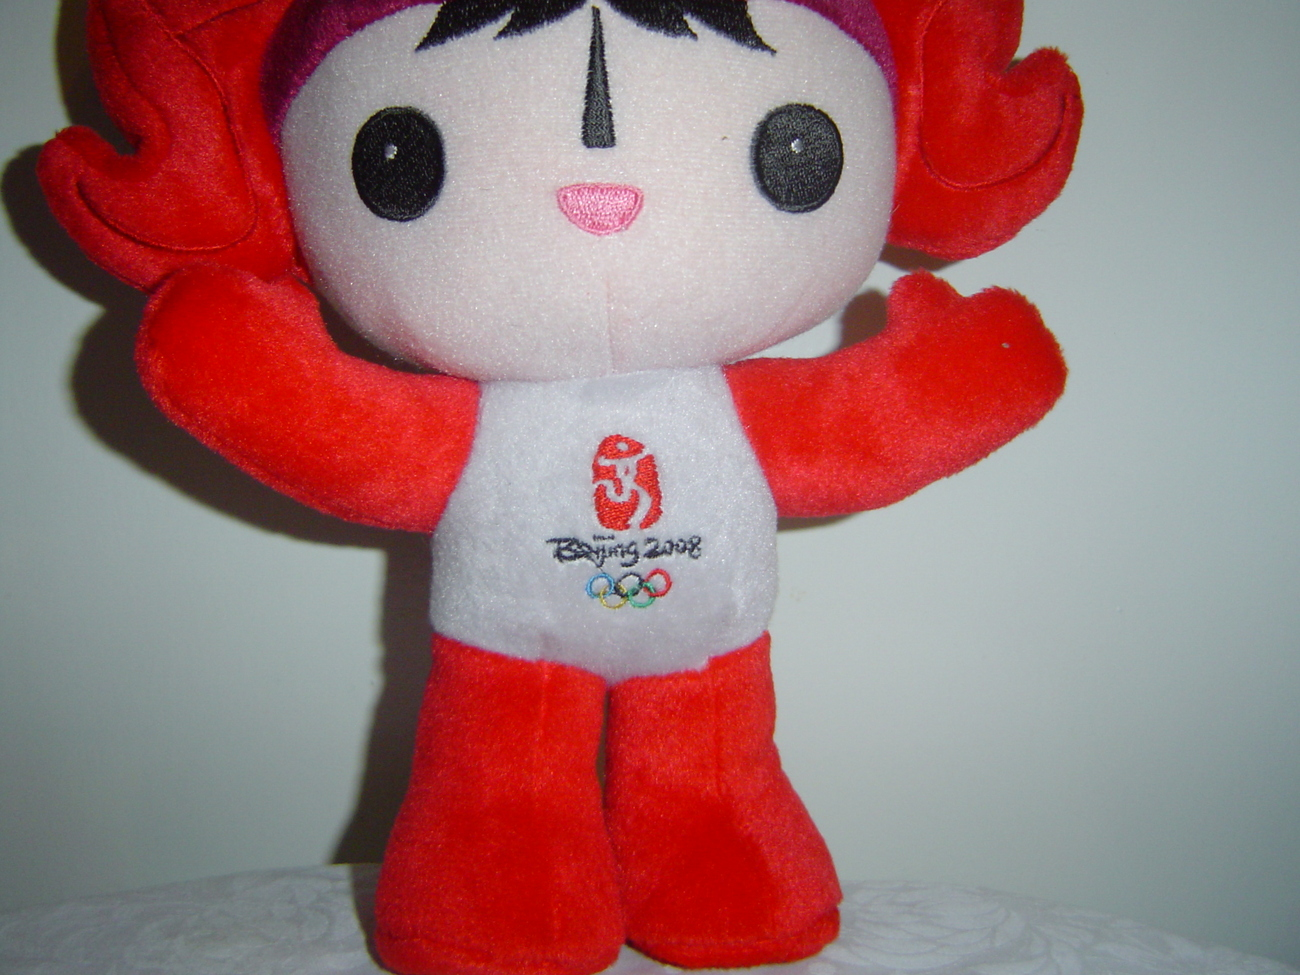 Bejing_mascots_011